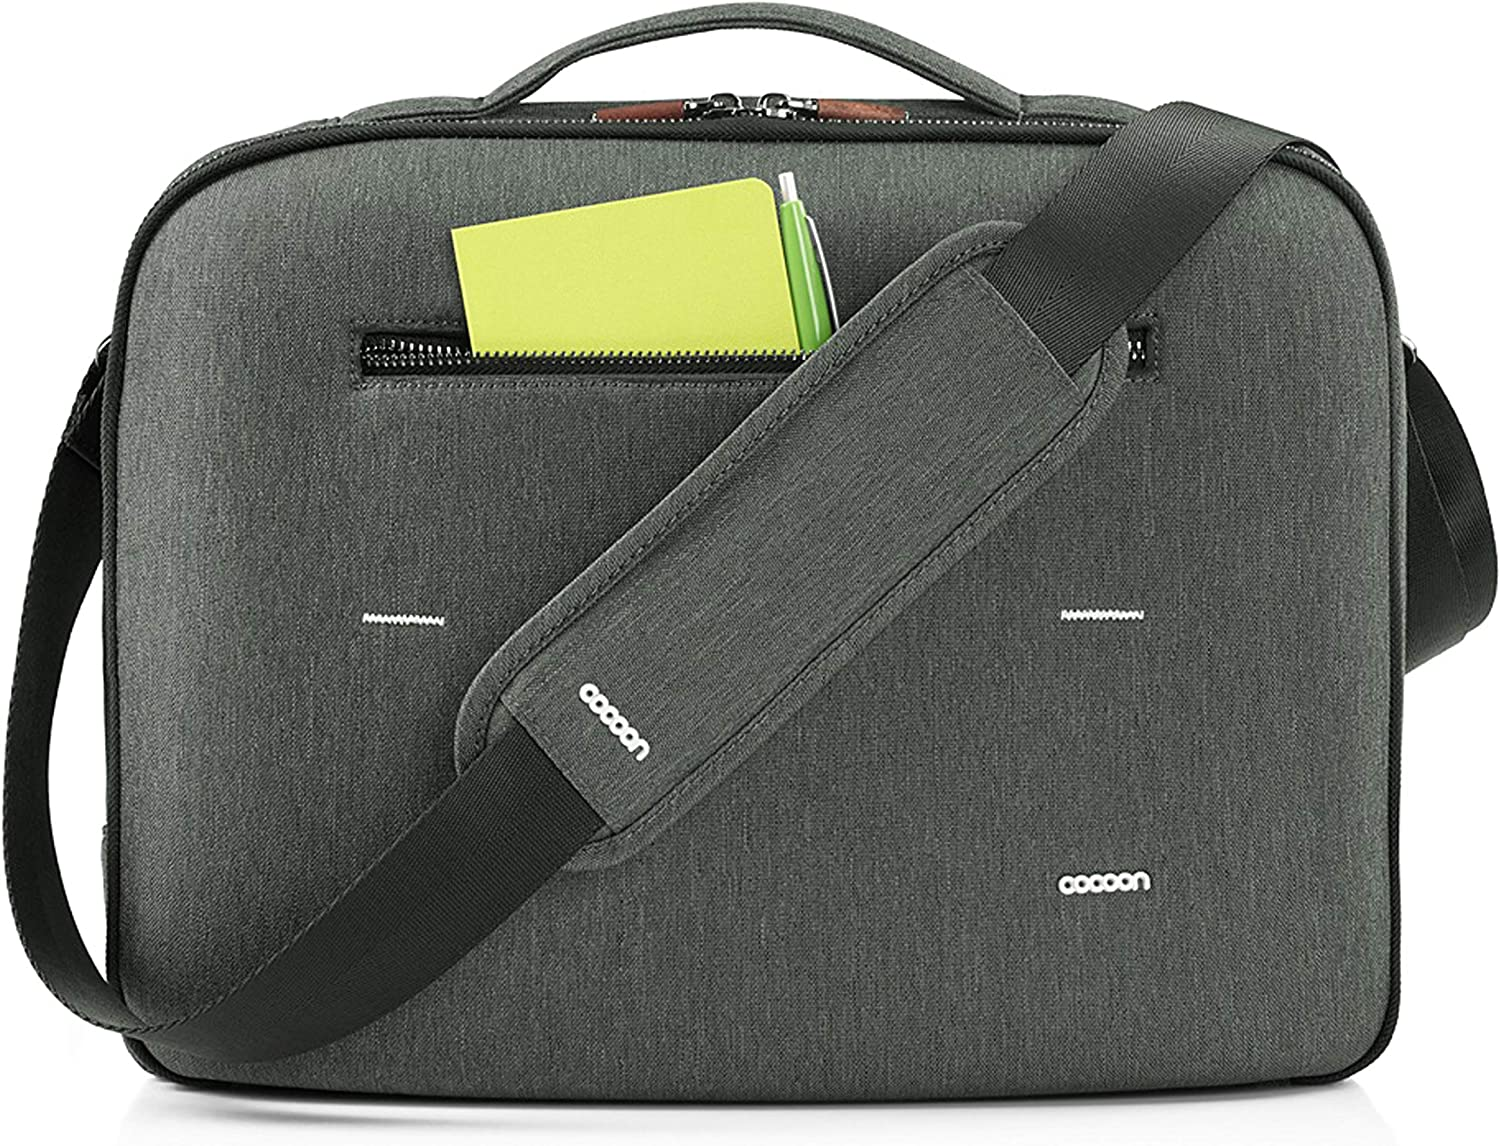 Water and Dust Resistant Case Nylon COCOON Anti-scratch Grey Lined Laptop Pocket 13 Frontal Pocket GRID-IT